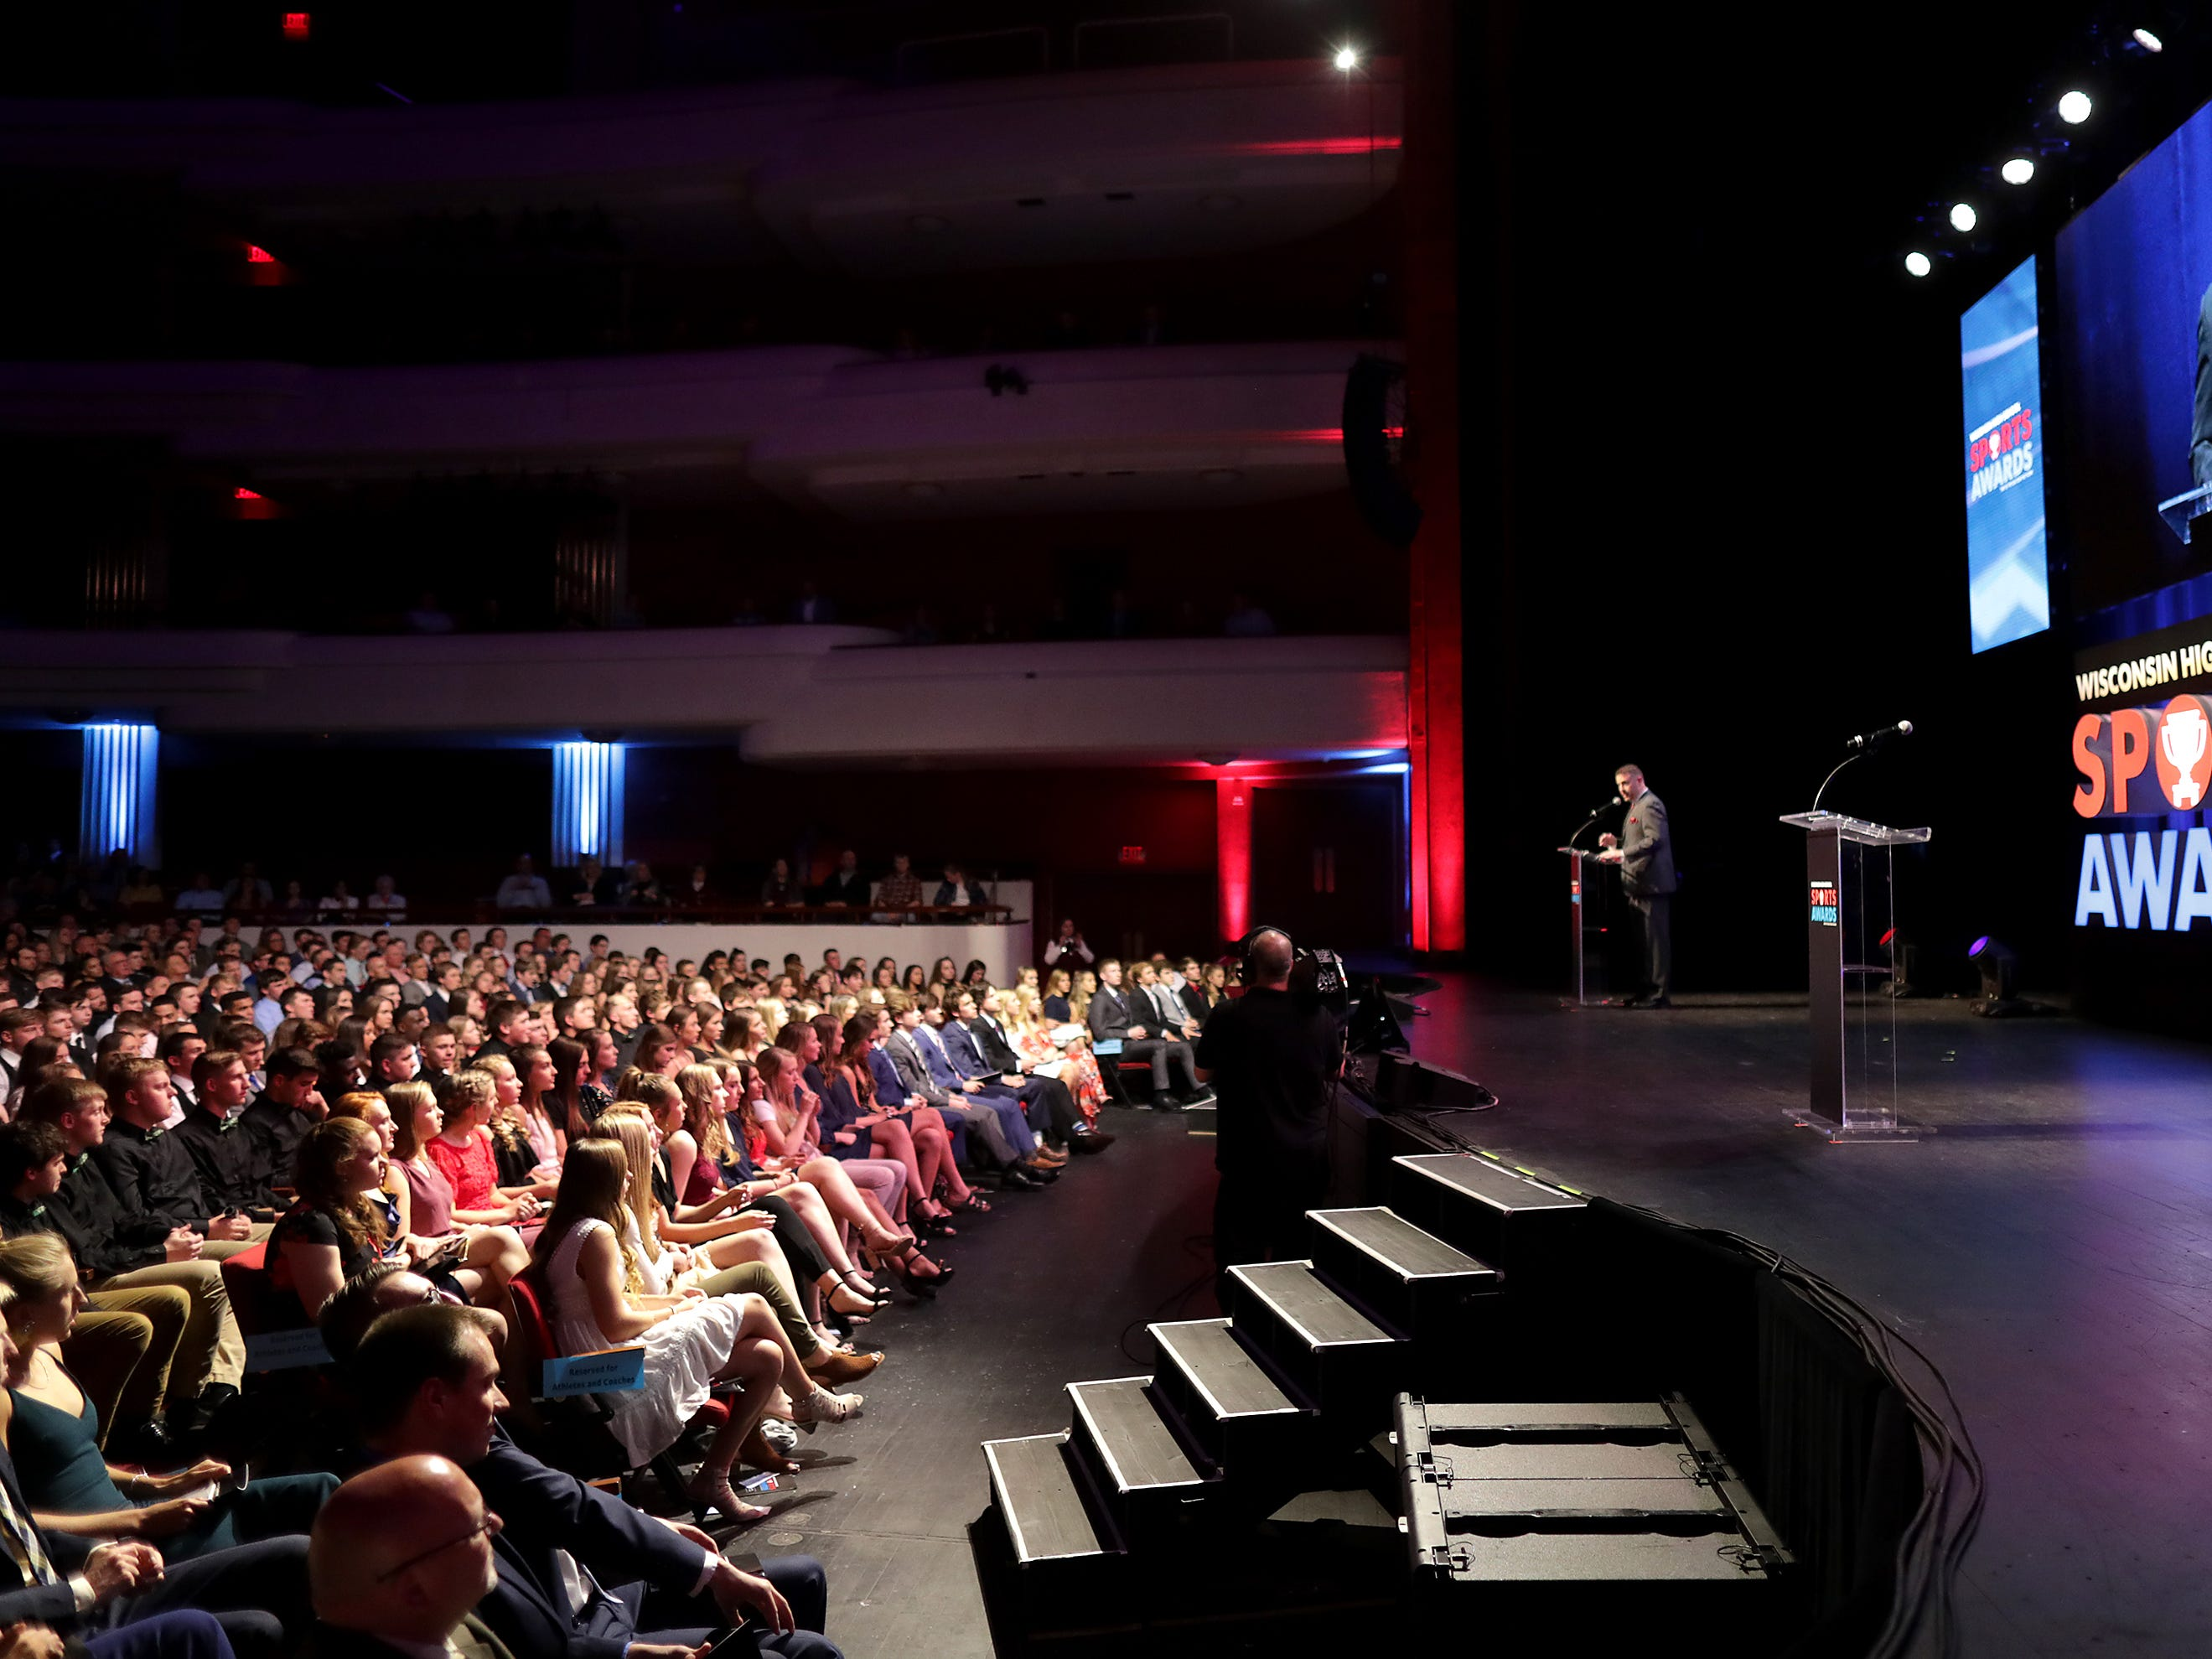 Wisconsin High School Sports Awards show at the Fox Cities Performing Arts Center on Wednesday, May 8, 2019, in Appleton, Wis. Olympic champion Michael Phelps was the guest speaker. The annual event was presented by USA TODAY NETWORK-Wisconsin.  Wm. Glasheen/USA TODAY NETWORK-Wisconsin.